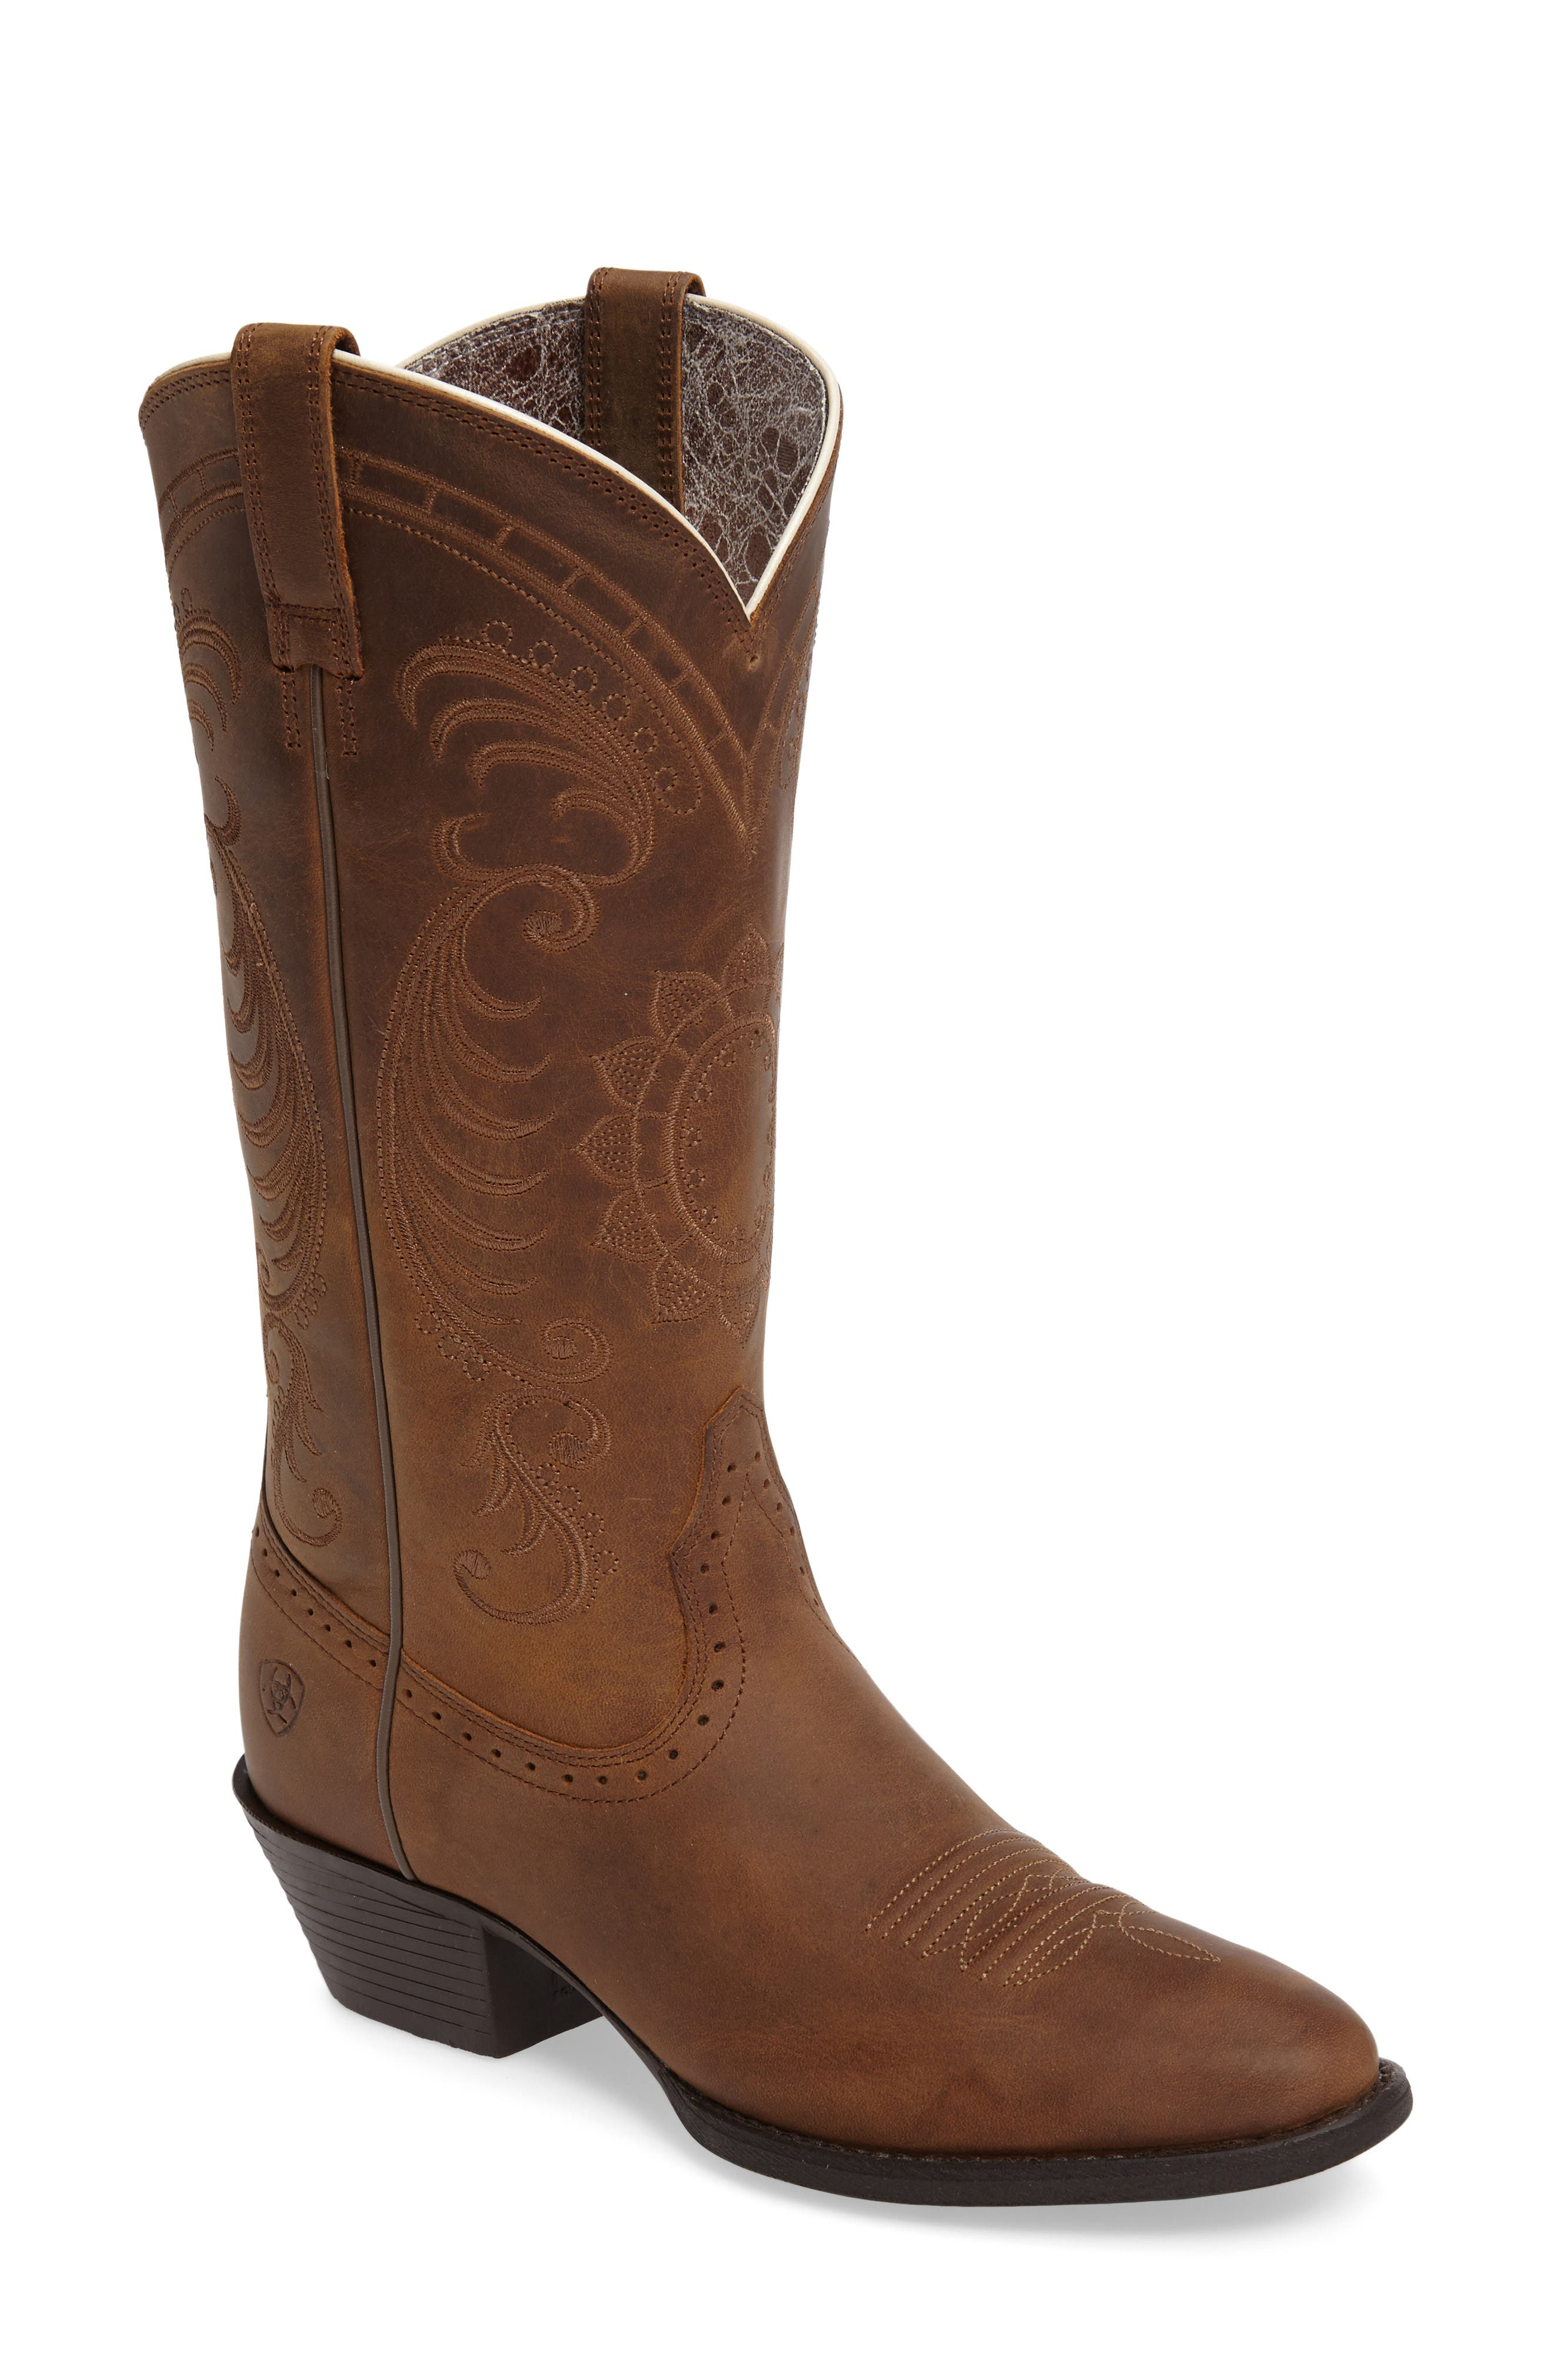 New West Collection - Magnolia Western Boot,                             Main thumbnail 1, color,                             DISTRESSED BROWN LEATHER